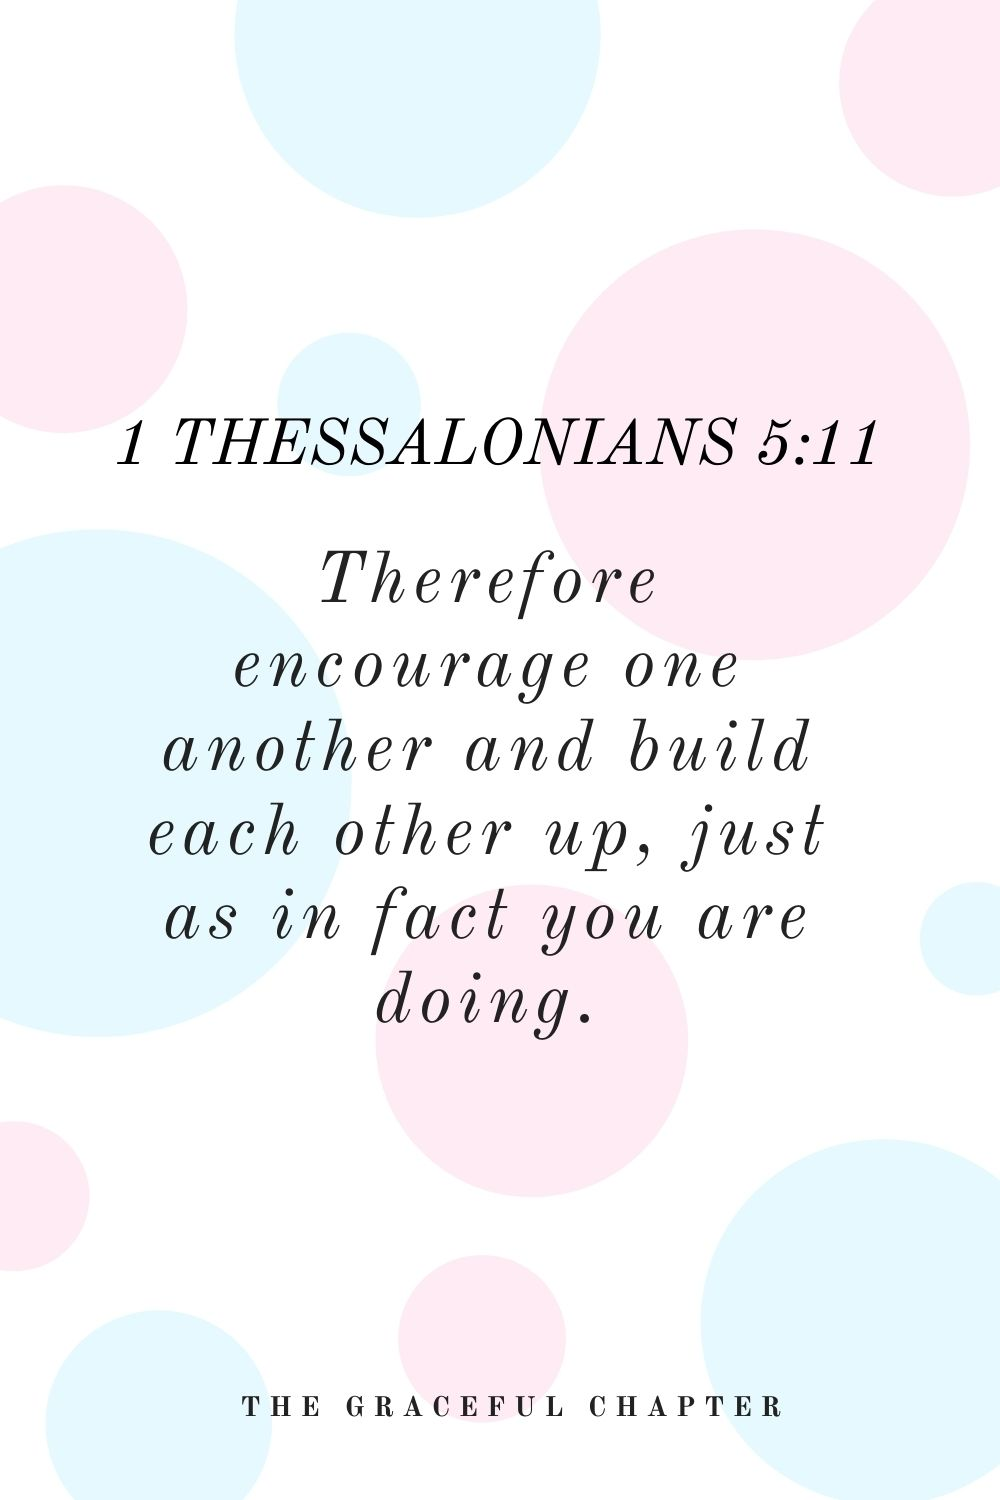 Therefore encourage one another and build each other up, just as in fact you are doing. 1 Thessalonians 5:11